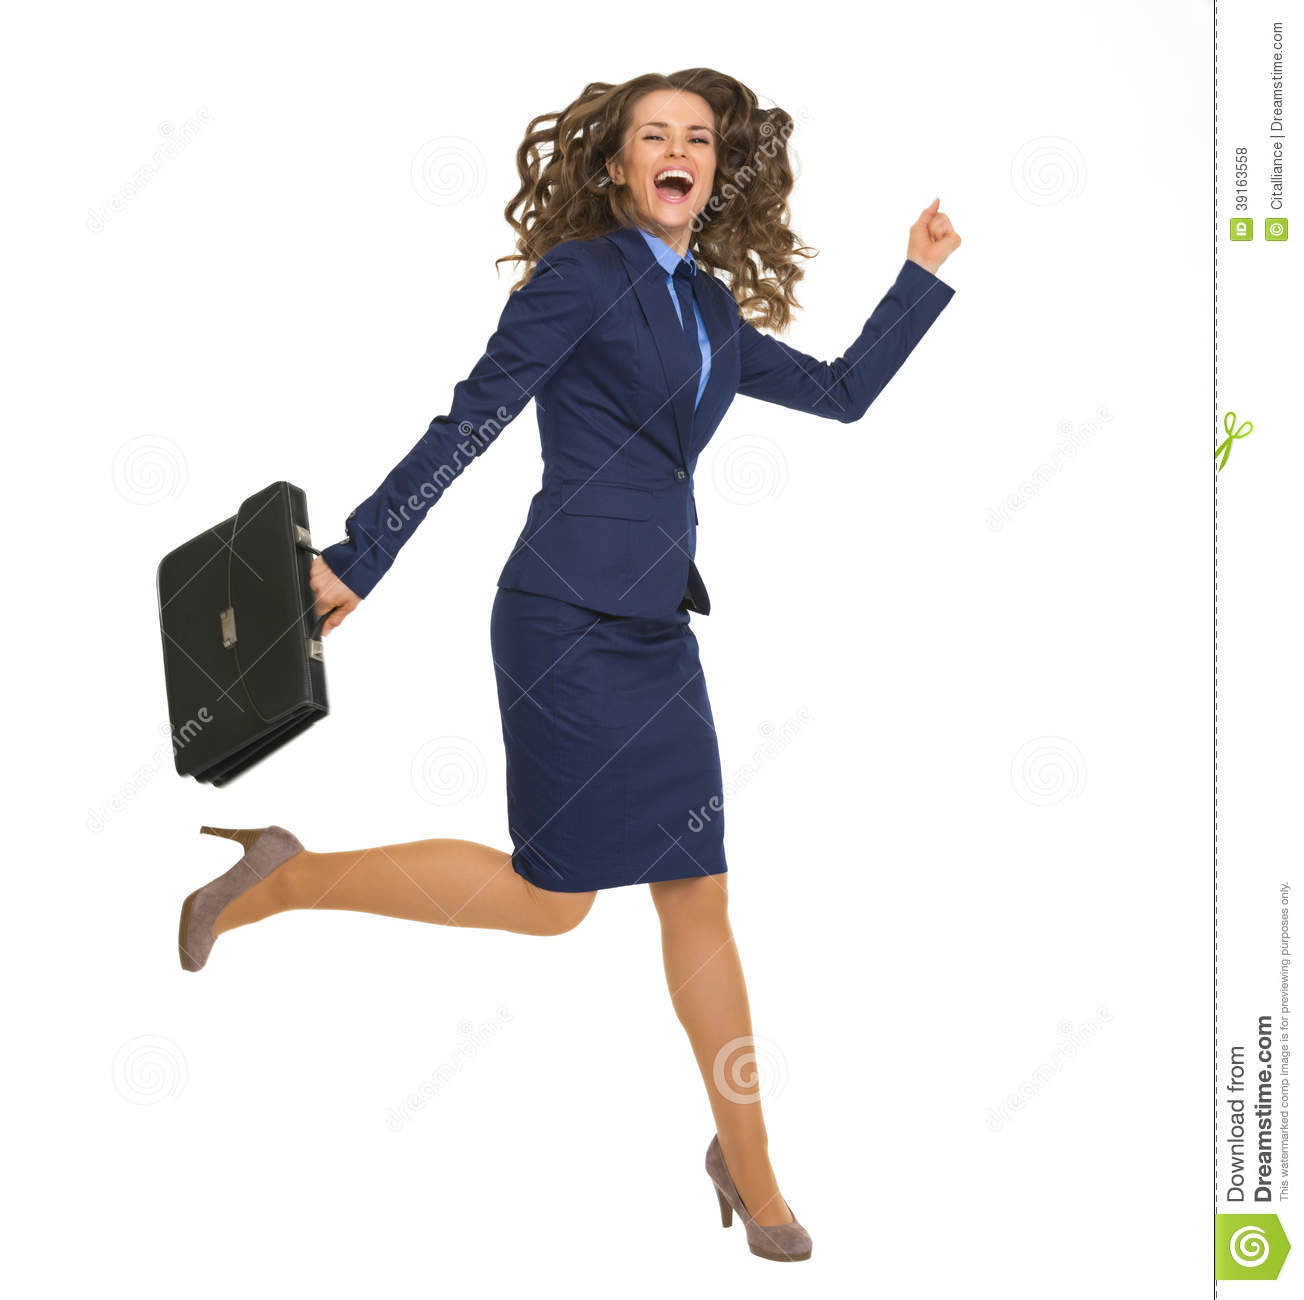 happy-business-woman-jumping-briefcase-isolated-white-39163558.jpg